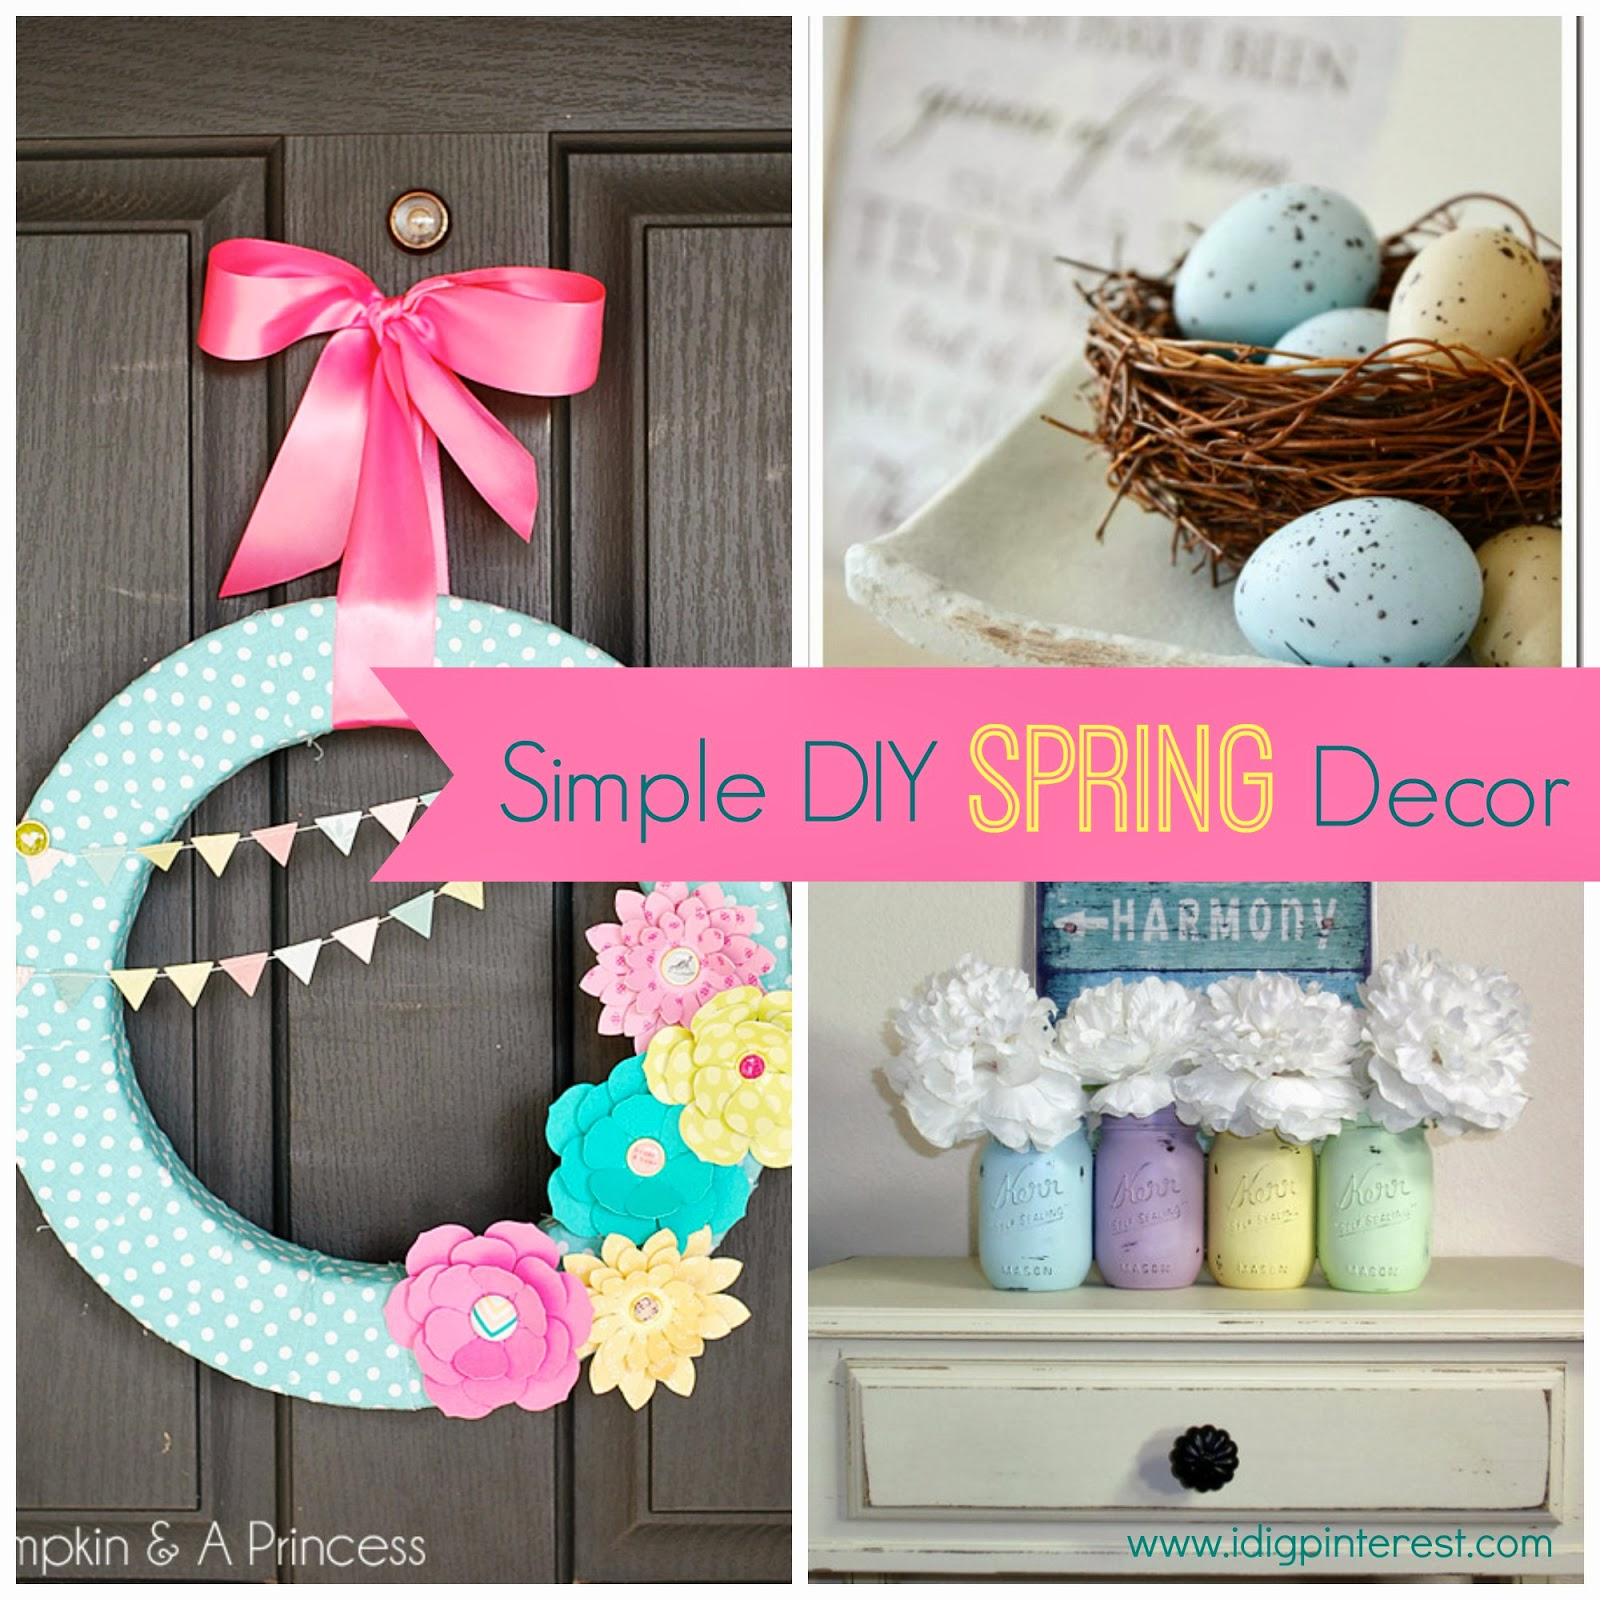 Home Design Ideas Handmade: Simple DIY Spring Decor Ideas